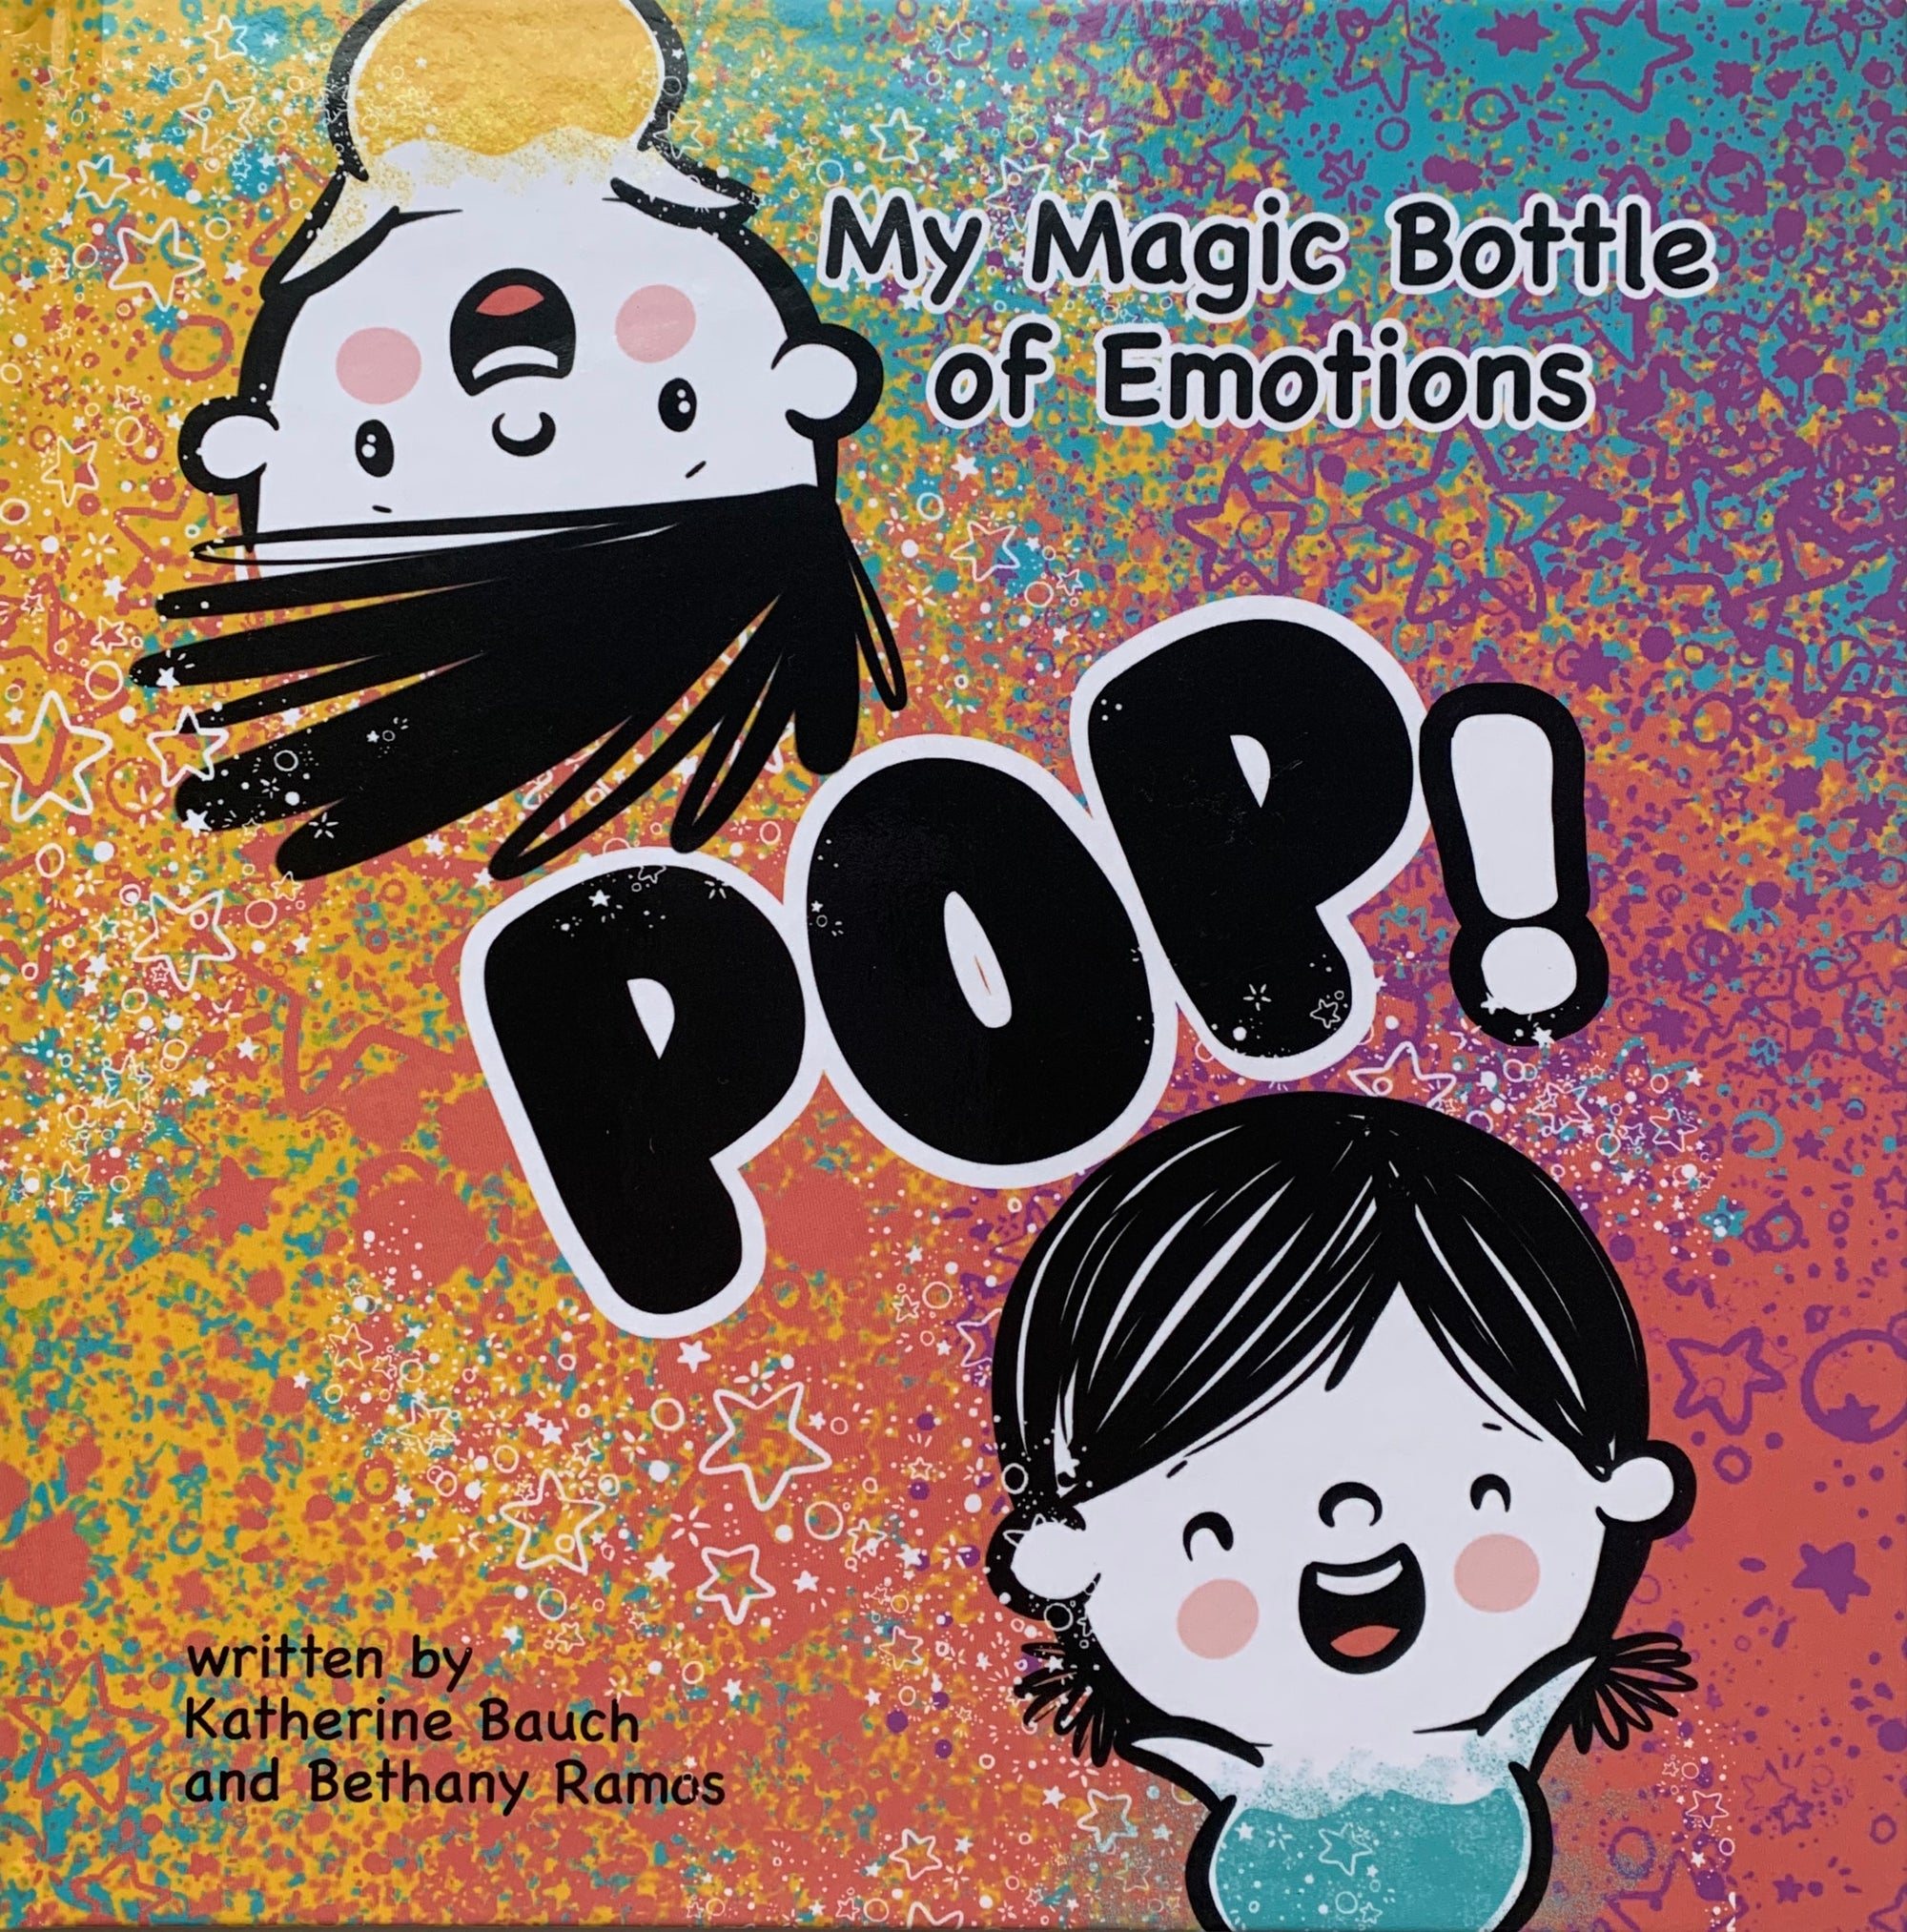 My Magic Bottle of Emotions — Autographed Hardcover Book